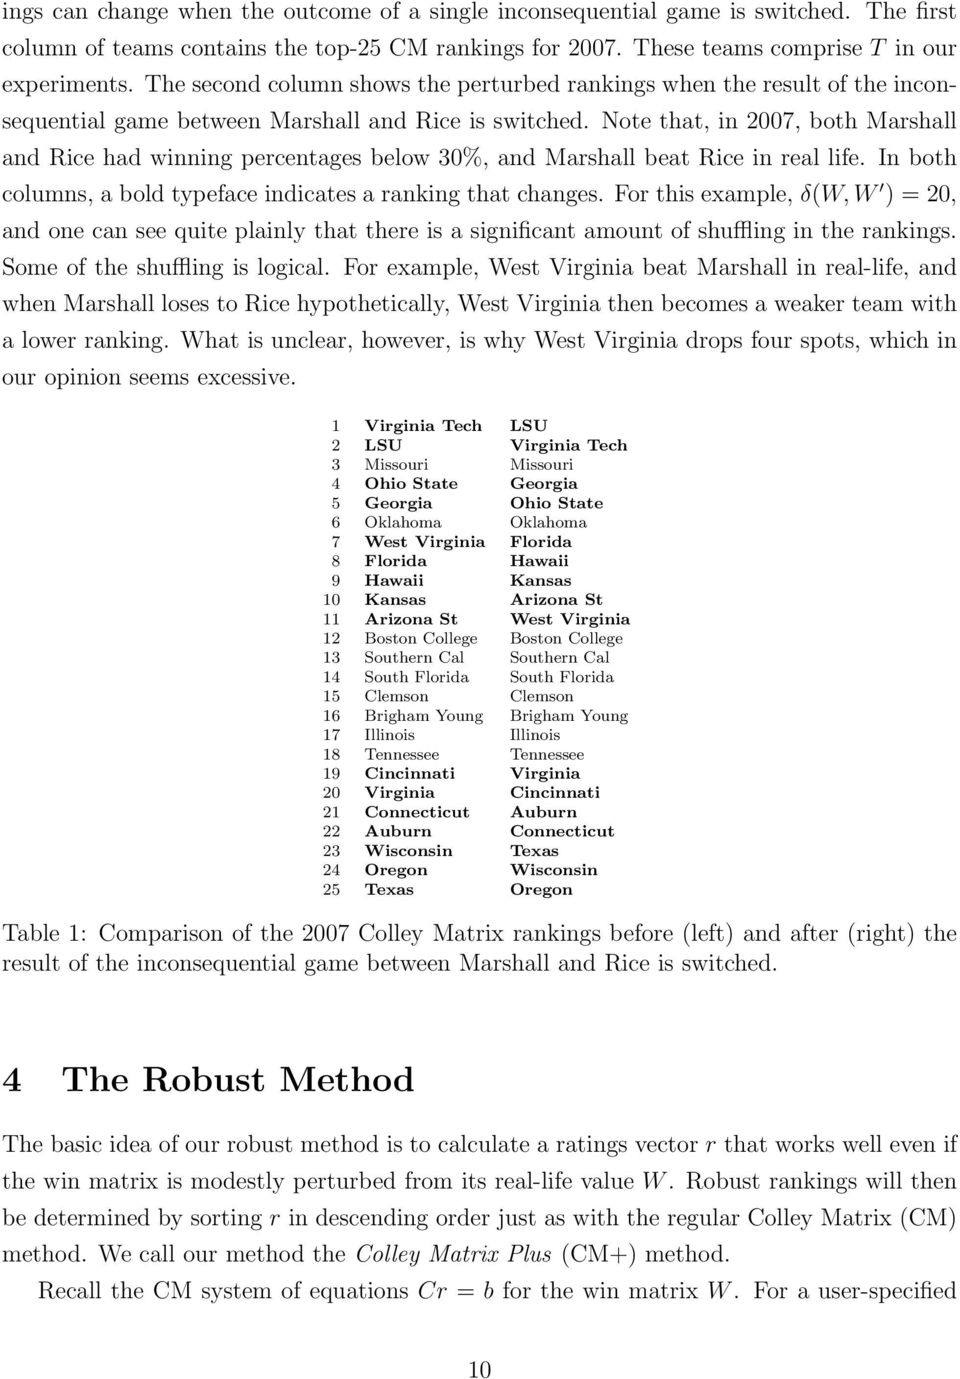 Note that, in 2007, both Marshall and Rice had winning percentages below 30%, and Marshall beat Rice in real life. In both columns, a bold typeface indicates a ranking that changes.